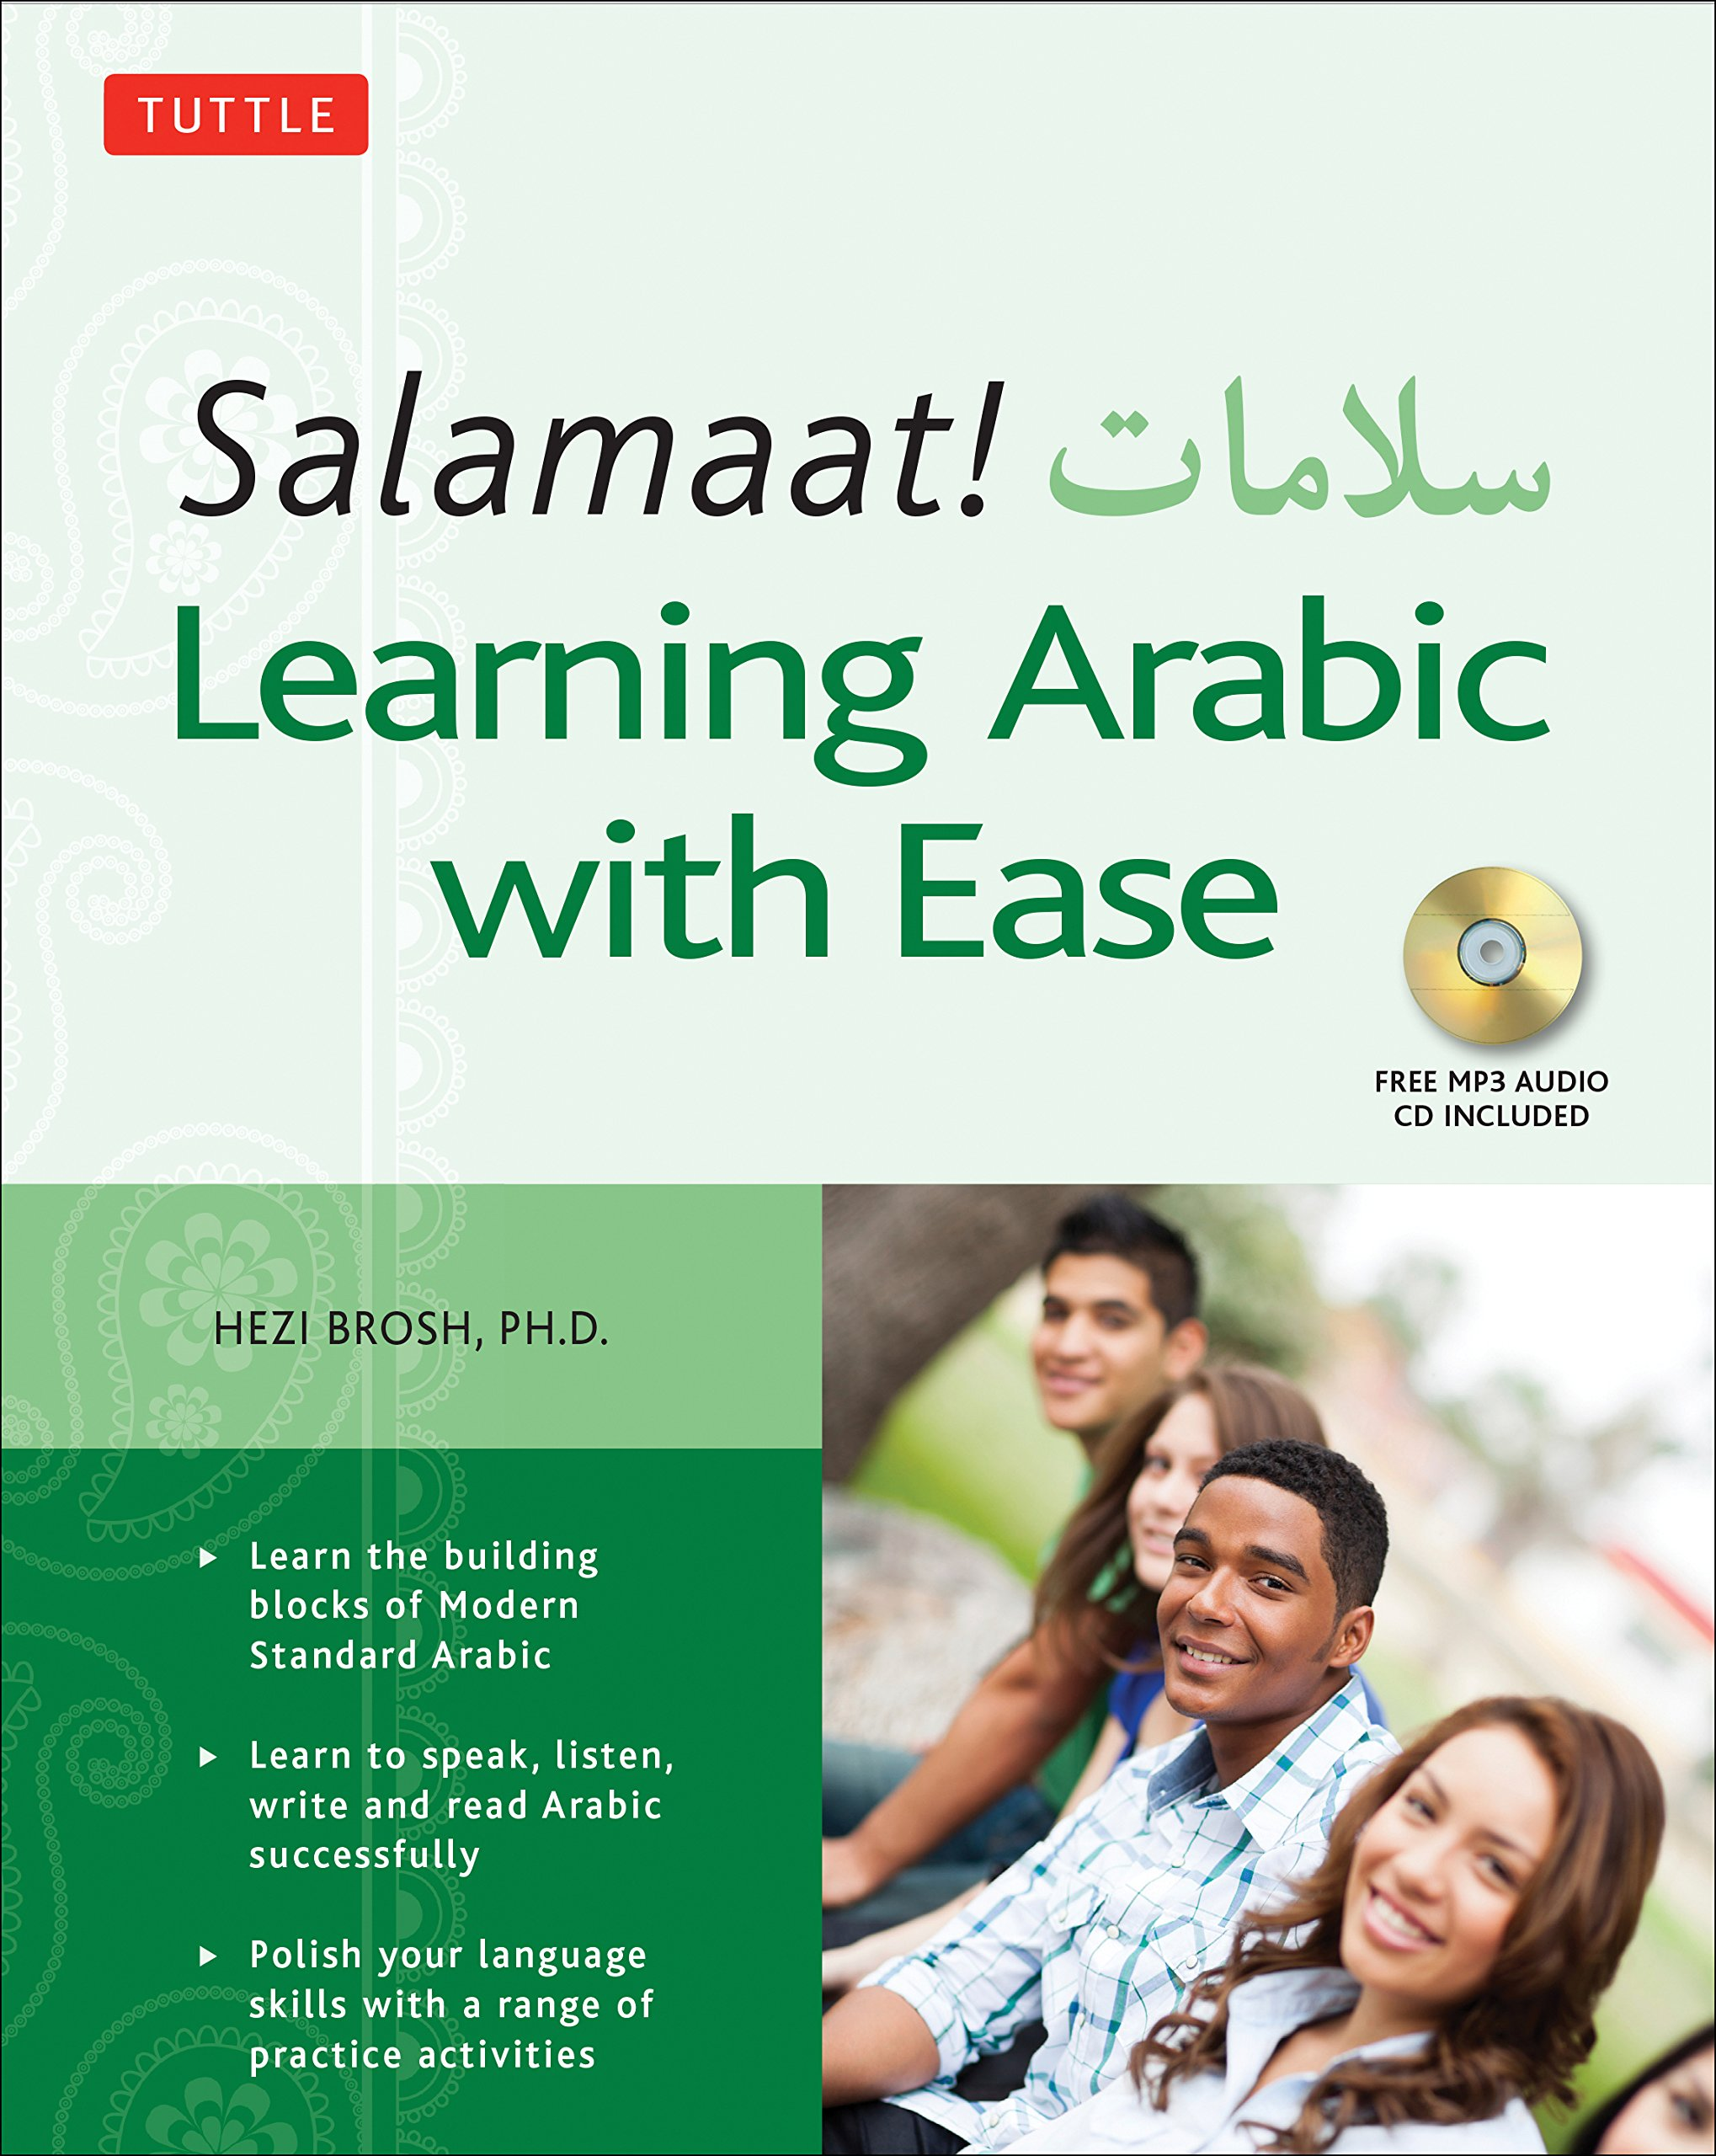 Salamaat! Learning Arabic with Ease: Learn the Building Blocks of Modern Standard Arabic (Includes Free MP3 Audio Disc)